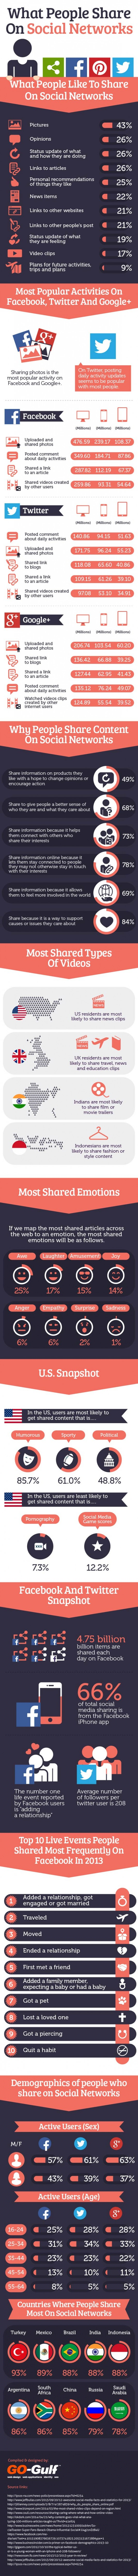 Infographie 151 - what-people-share-social-networks